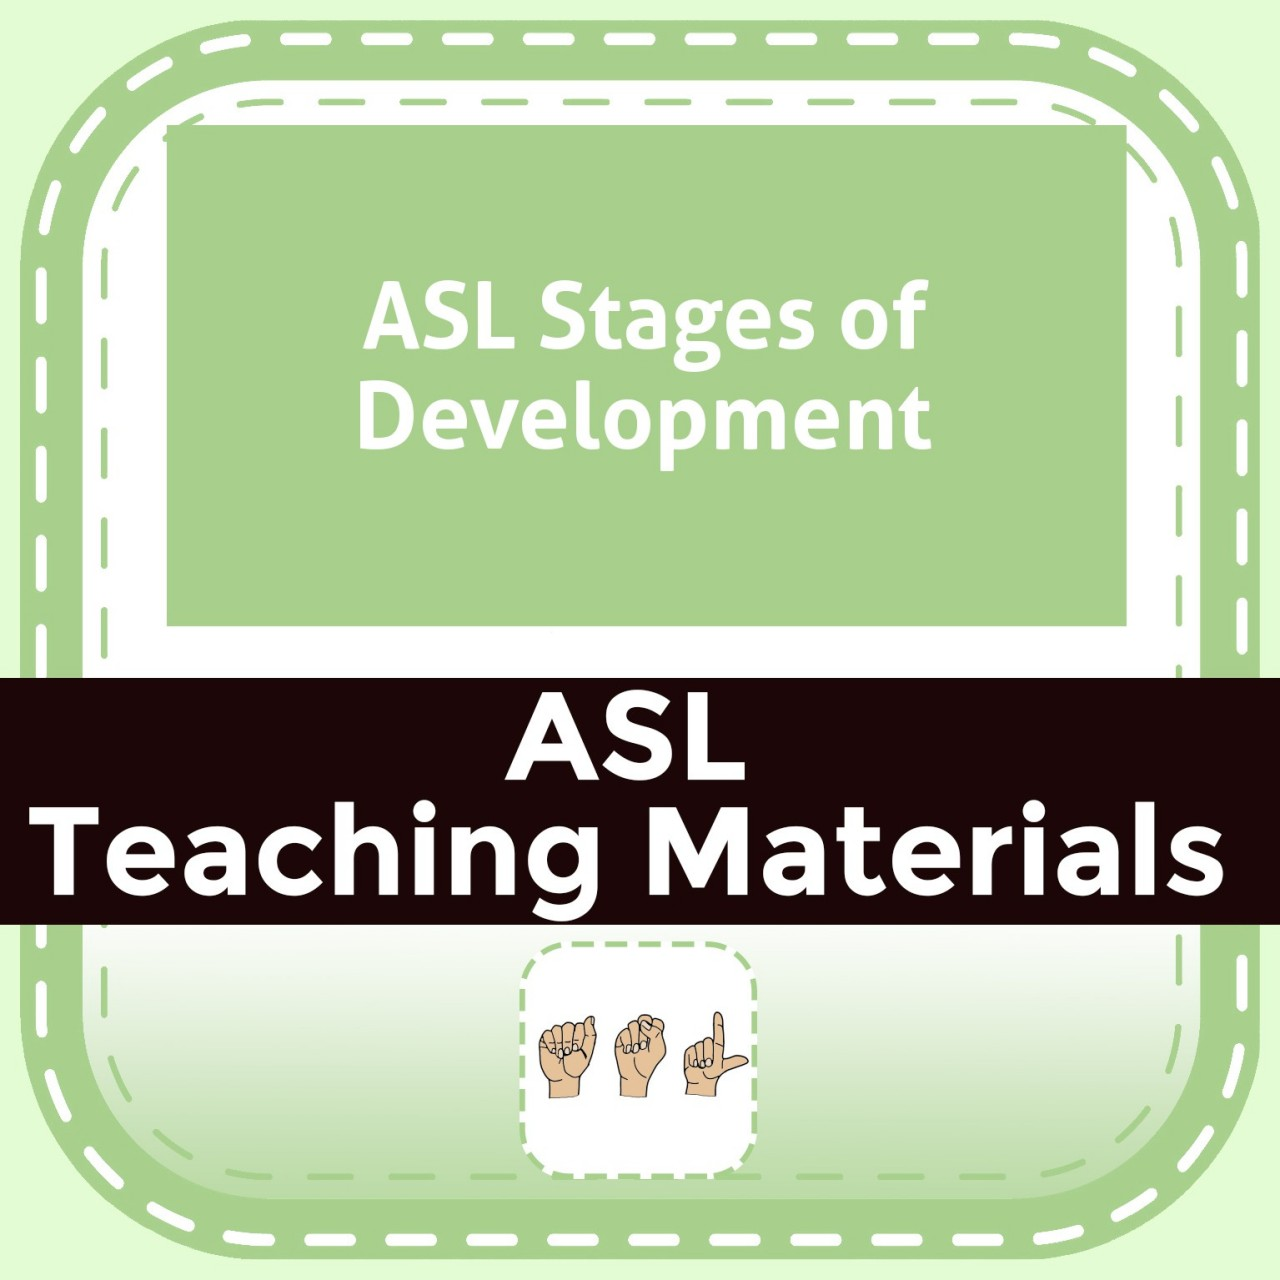 ASL Stages of Development